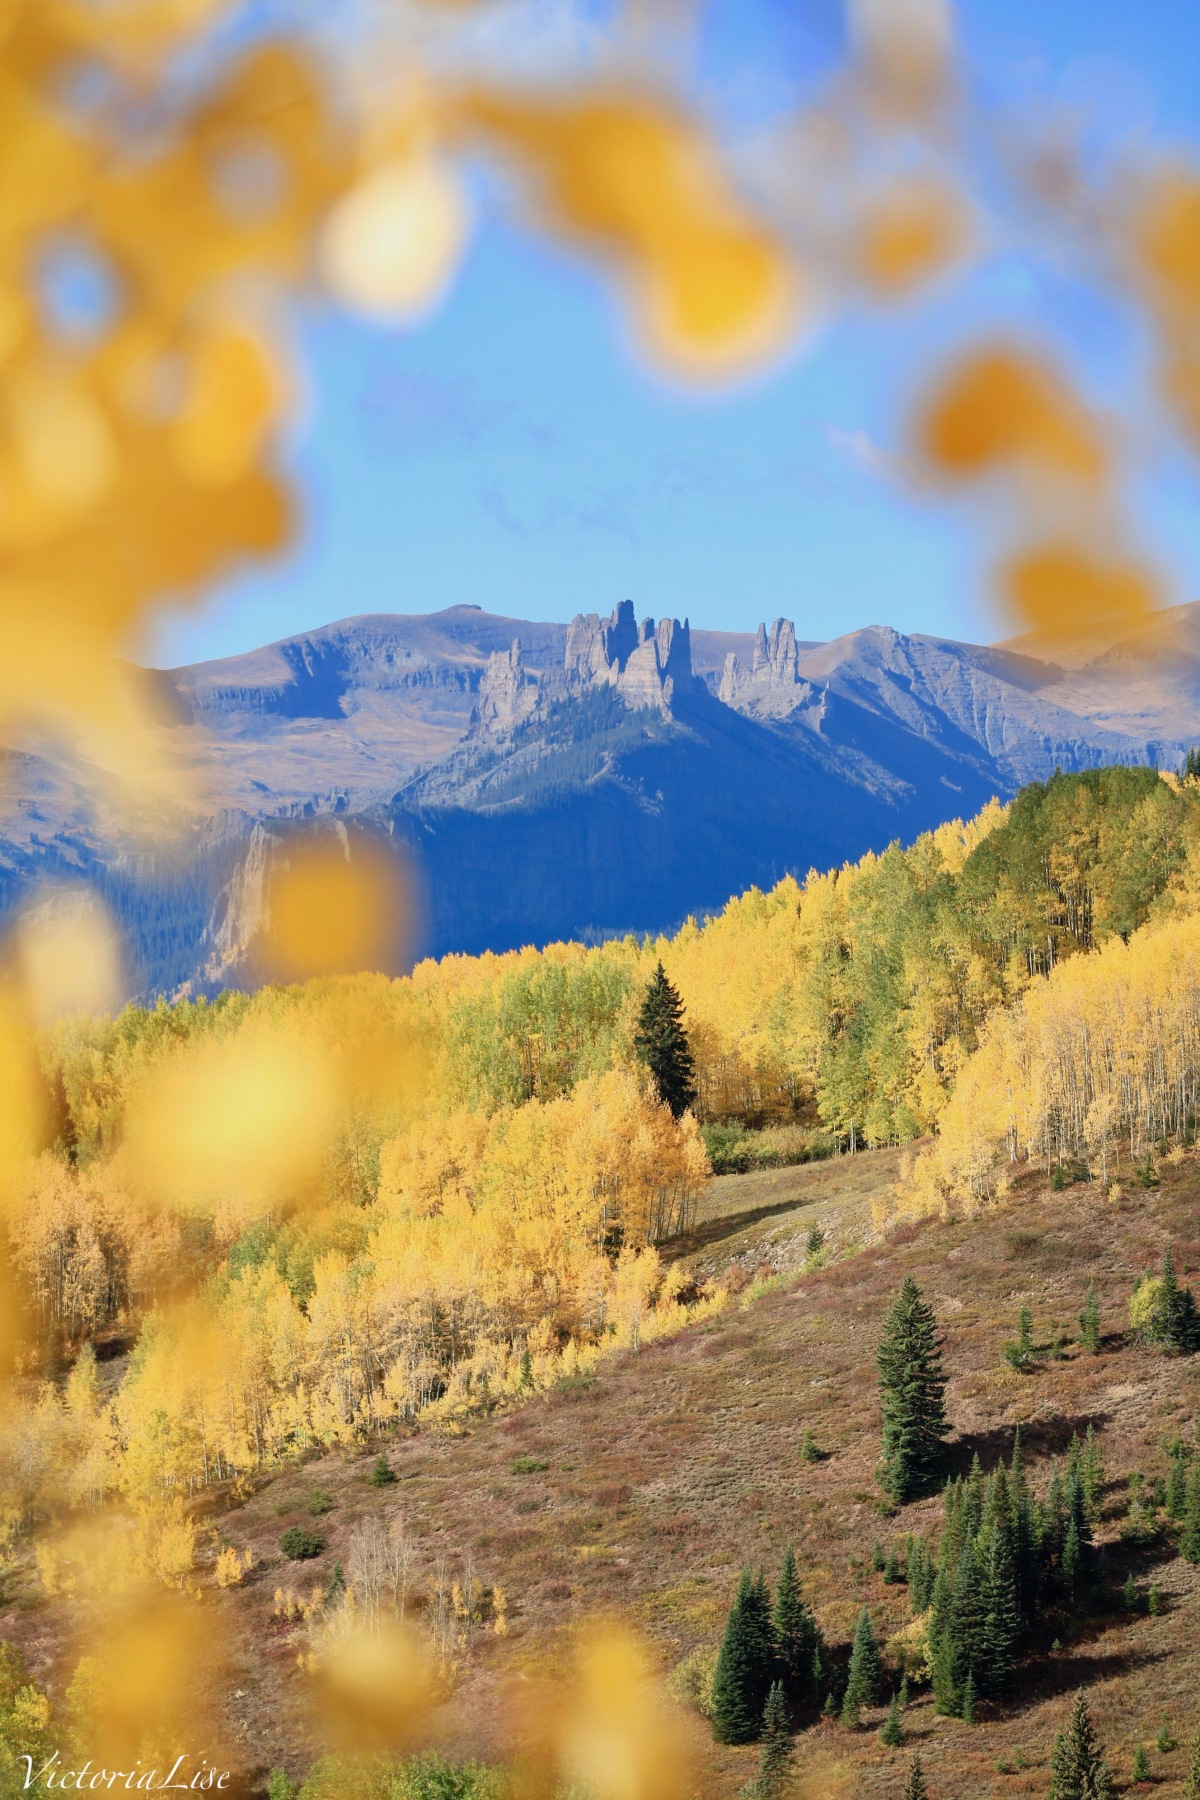 The Castles of Gunnison, Colorado, framed by a cluster of yellow aspen leaves. ©Victoria Lise 2018.